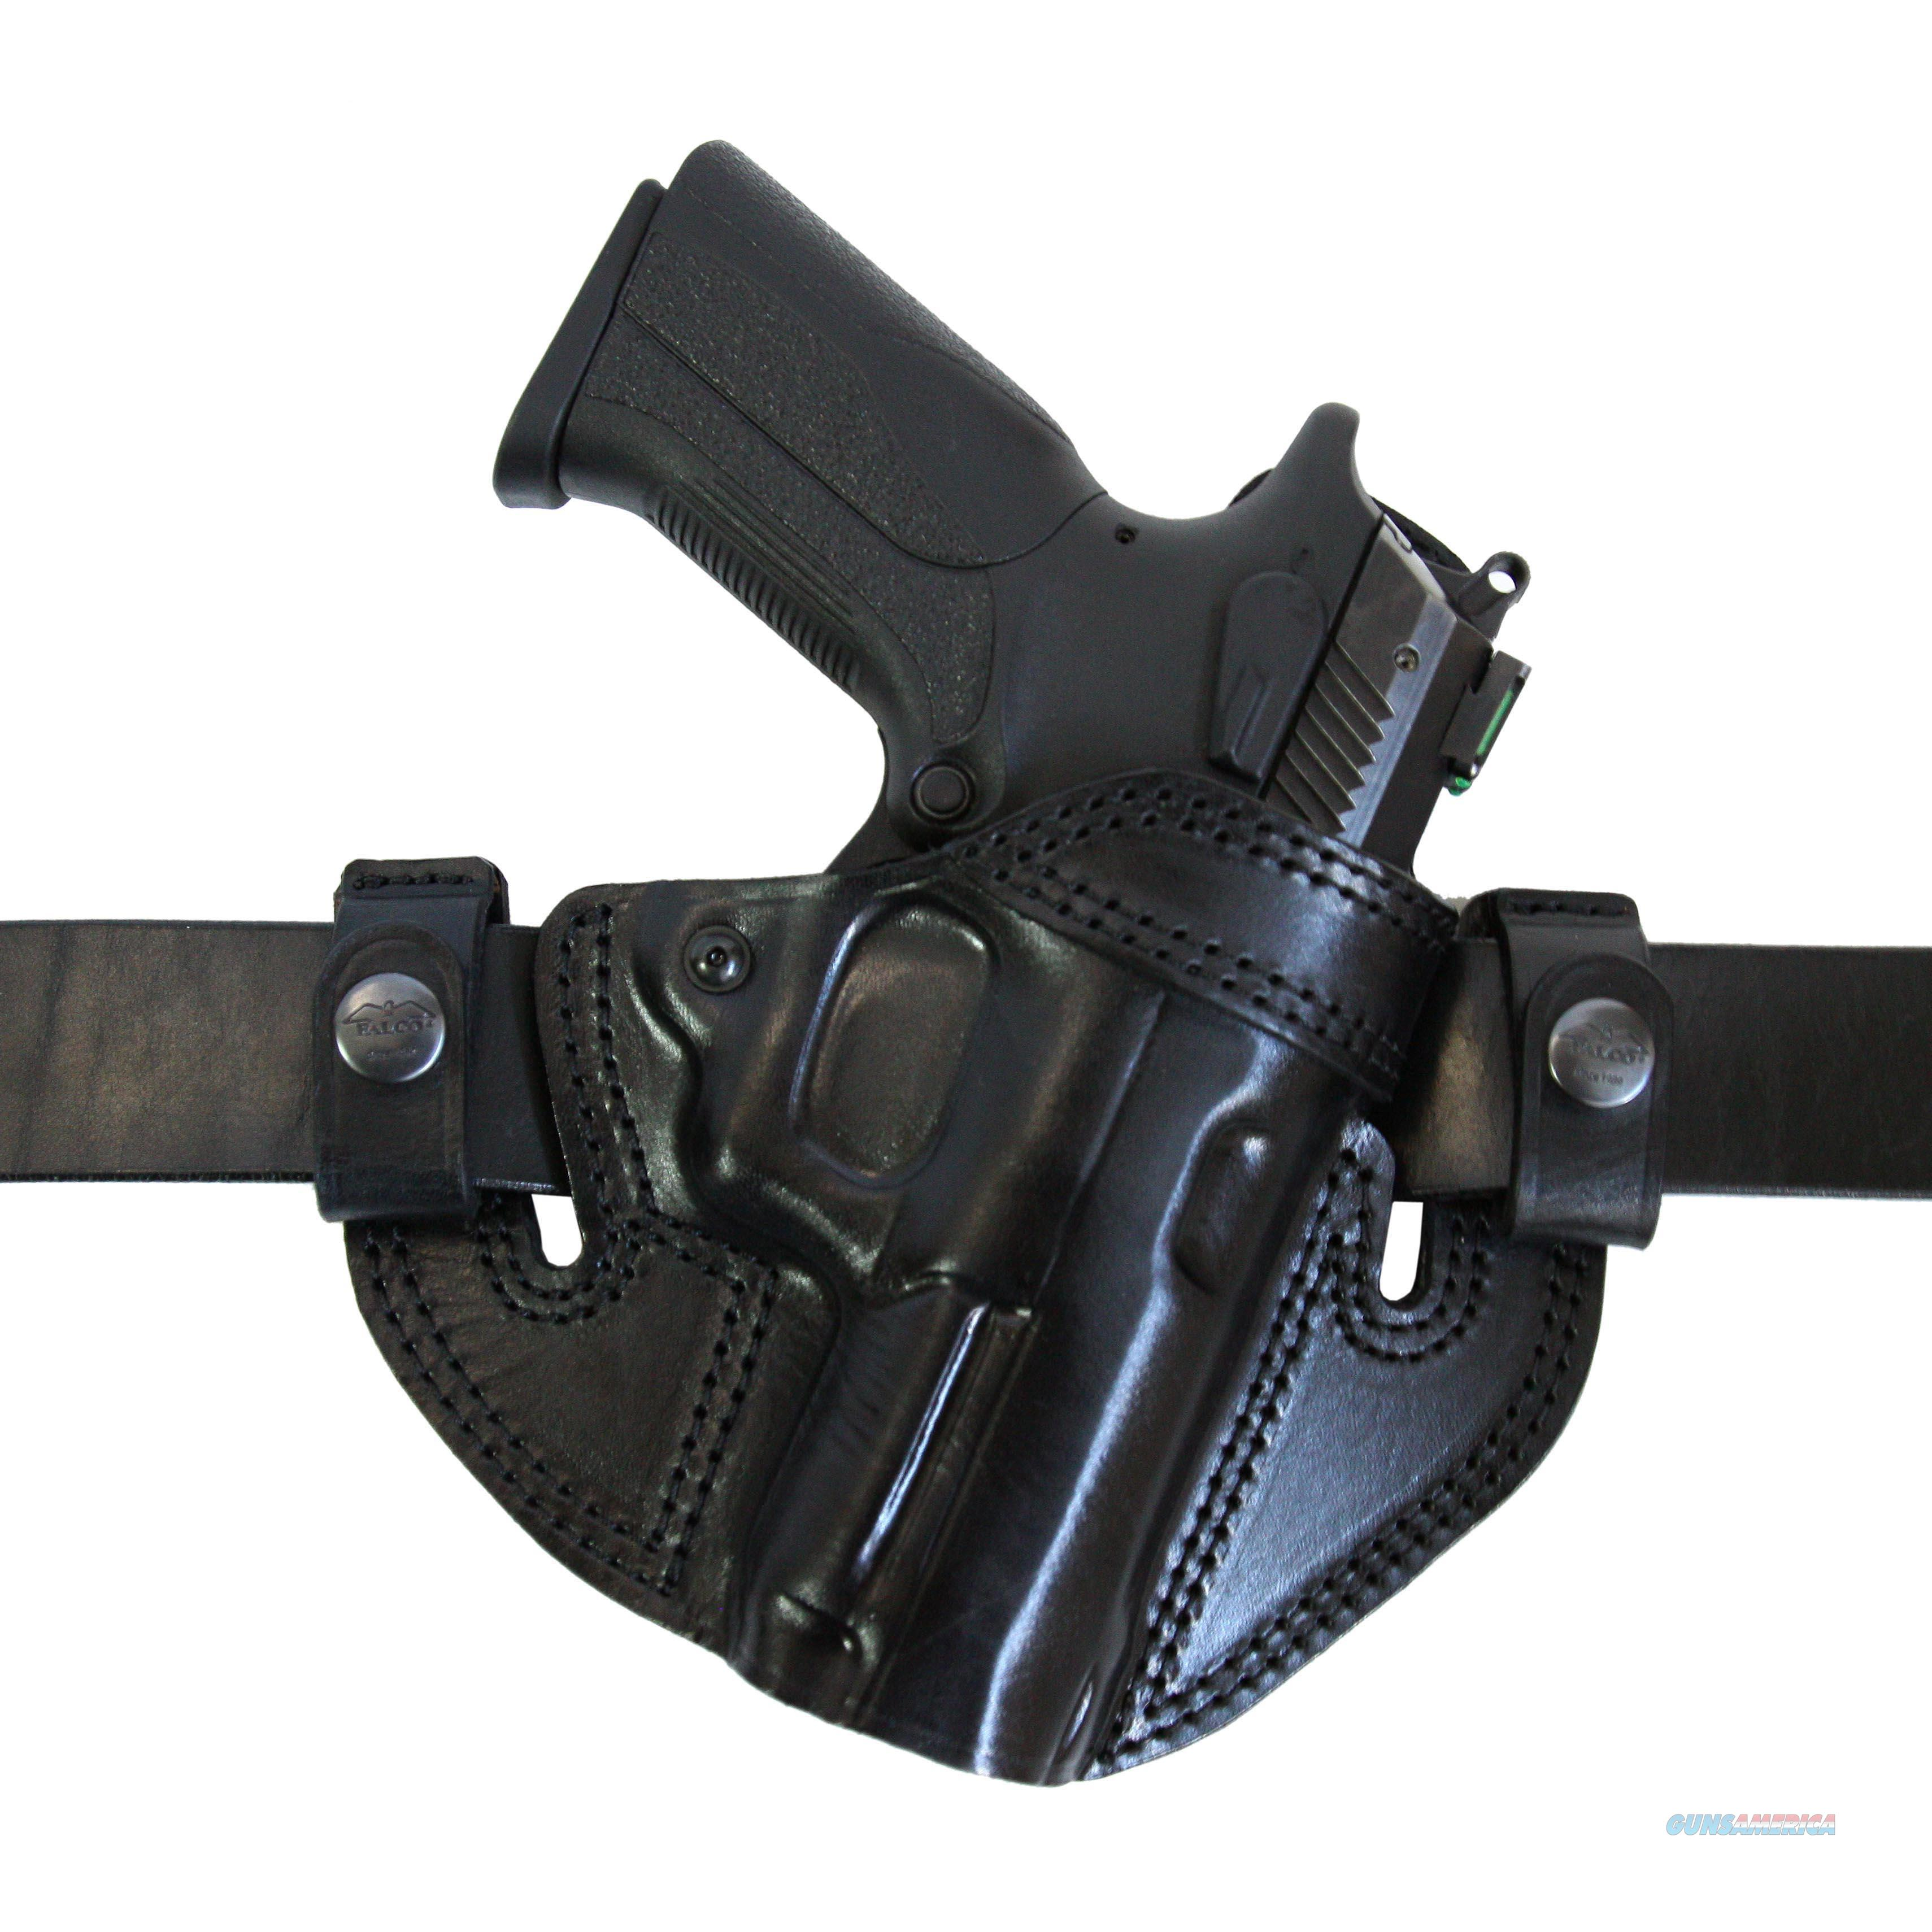 IWB / OWB Leather Gun Holster  Heckler & Koch USP 9mm  Non-Guns > Holsters and Gunleather > Concealed Carry